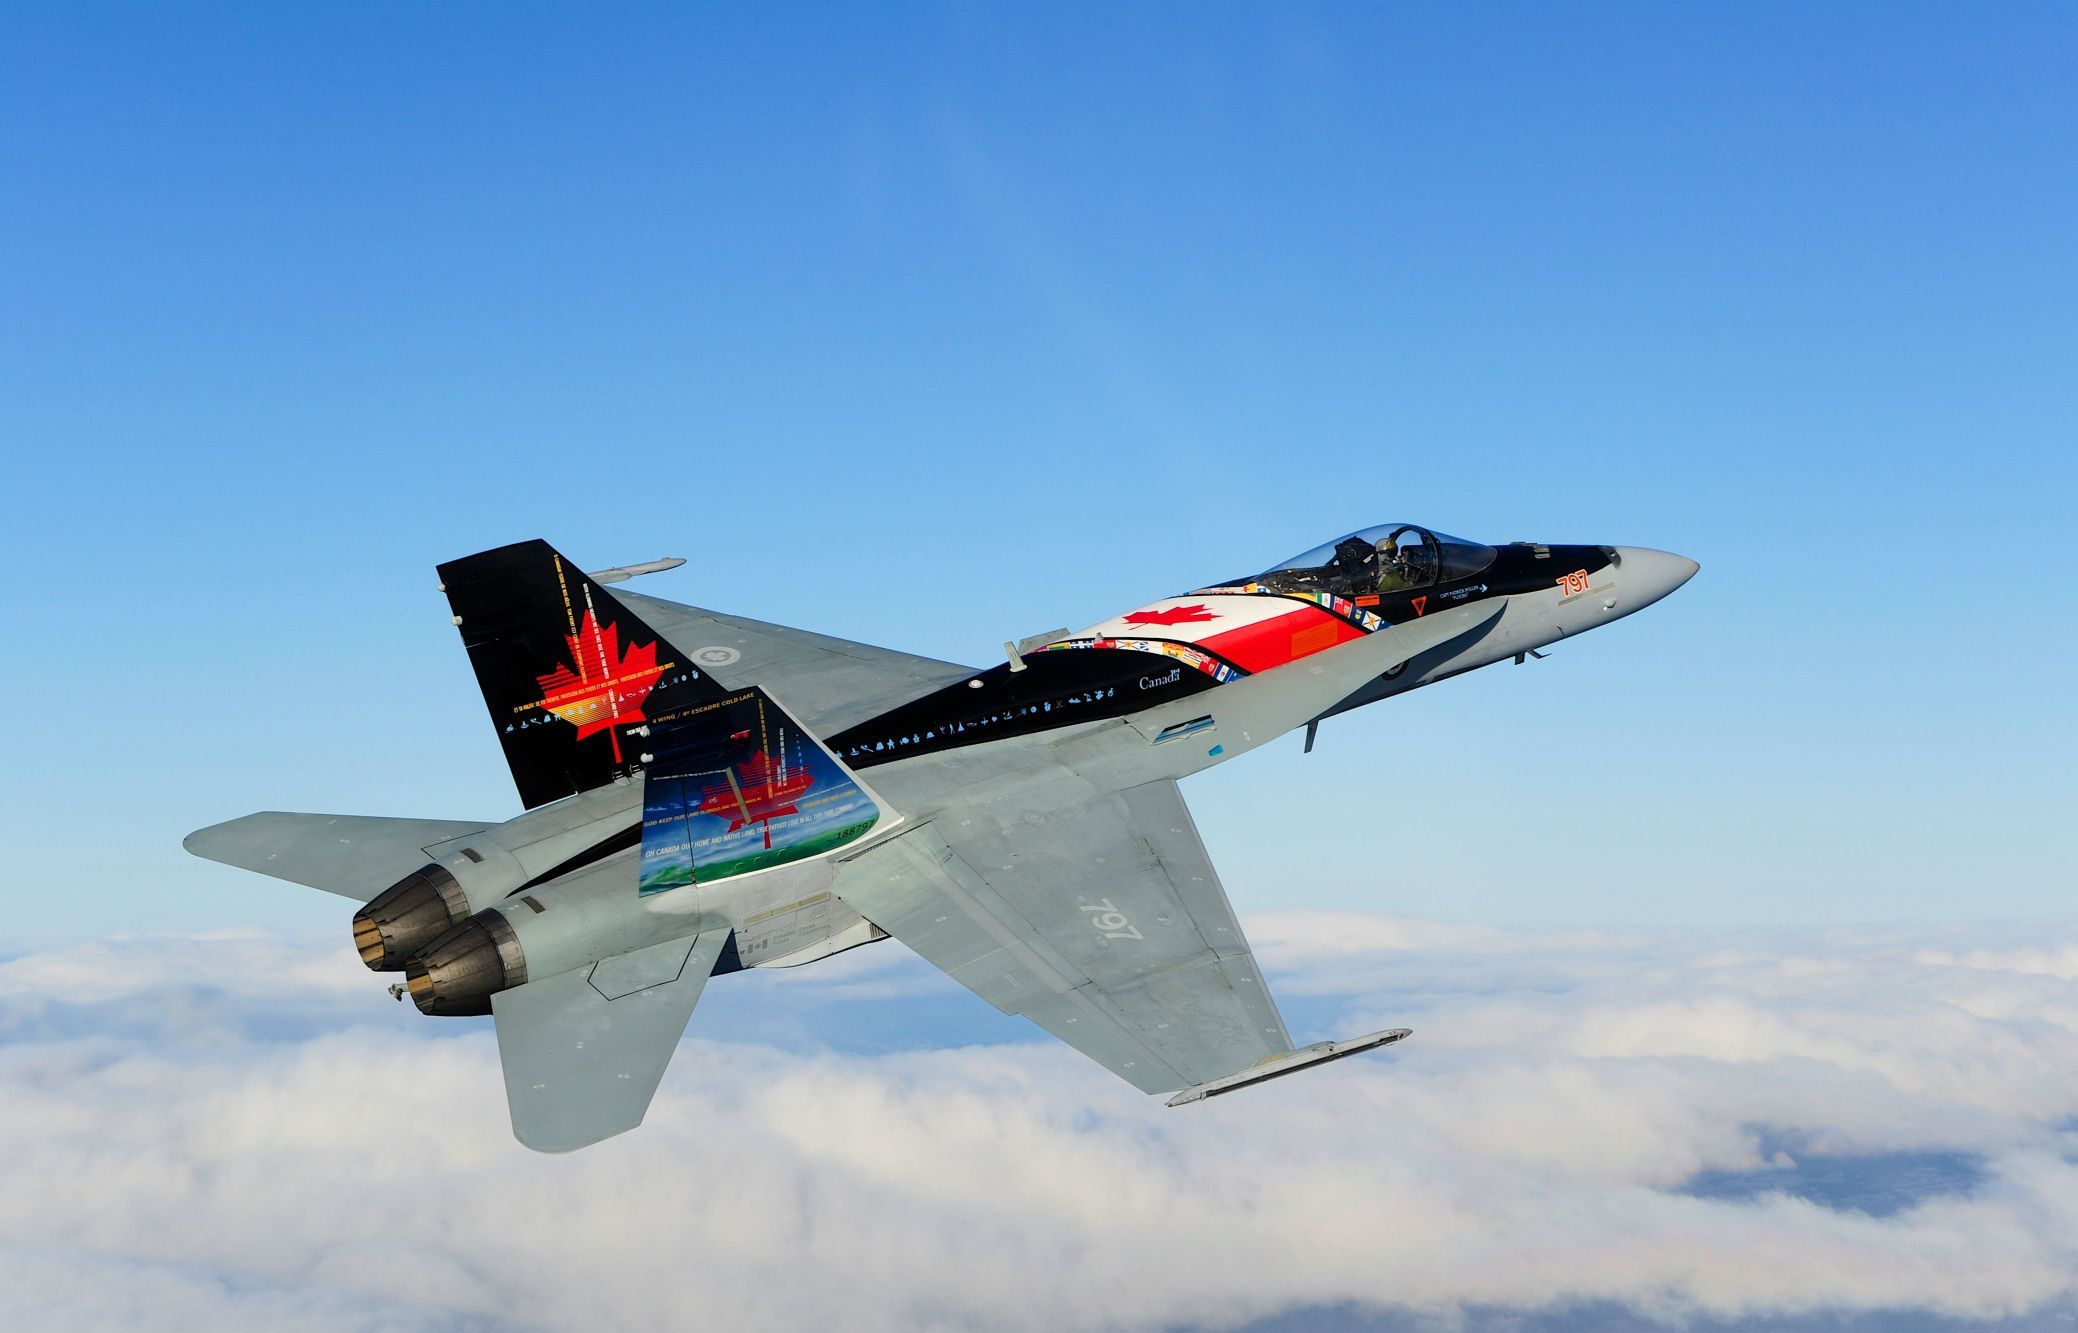 royal canadian air force f 18 hornet rcaf f 18 hornet royal canadian 2078x1333